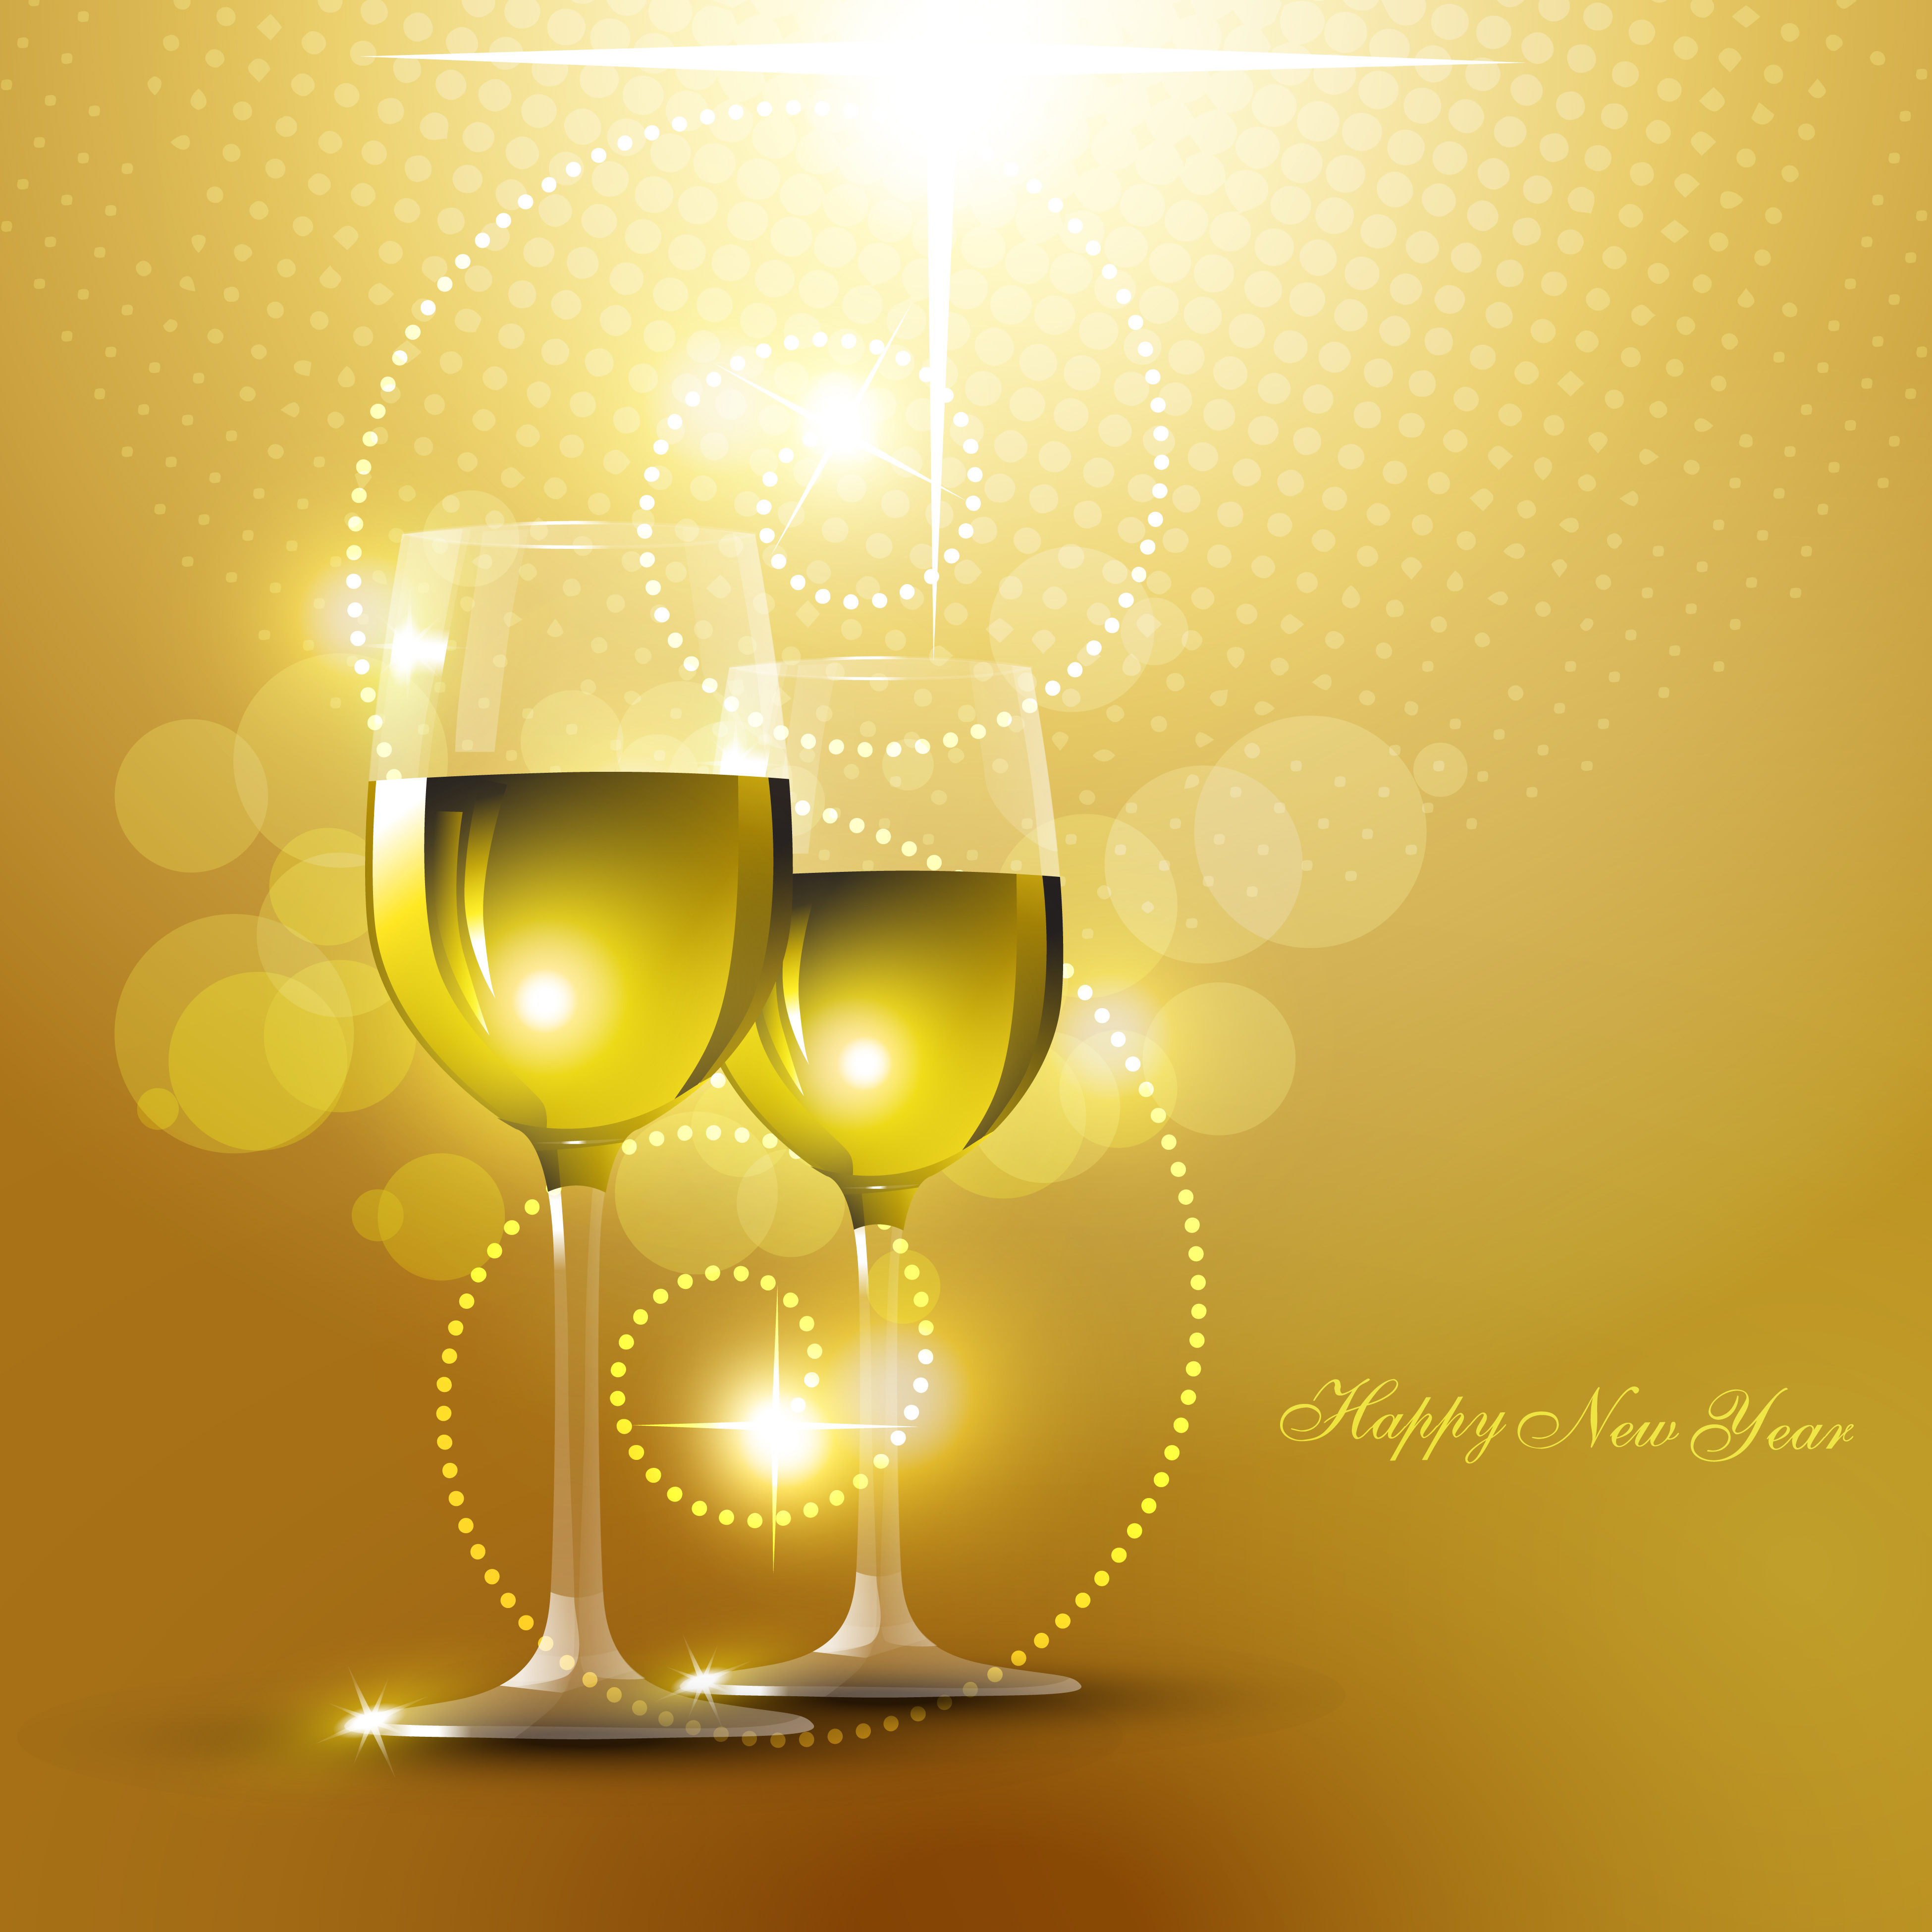 Wine Glass Isolated Free Vector Art 68 482 Free Downloads